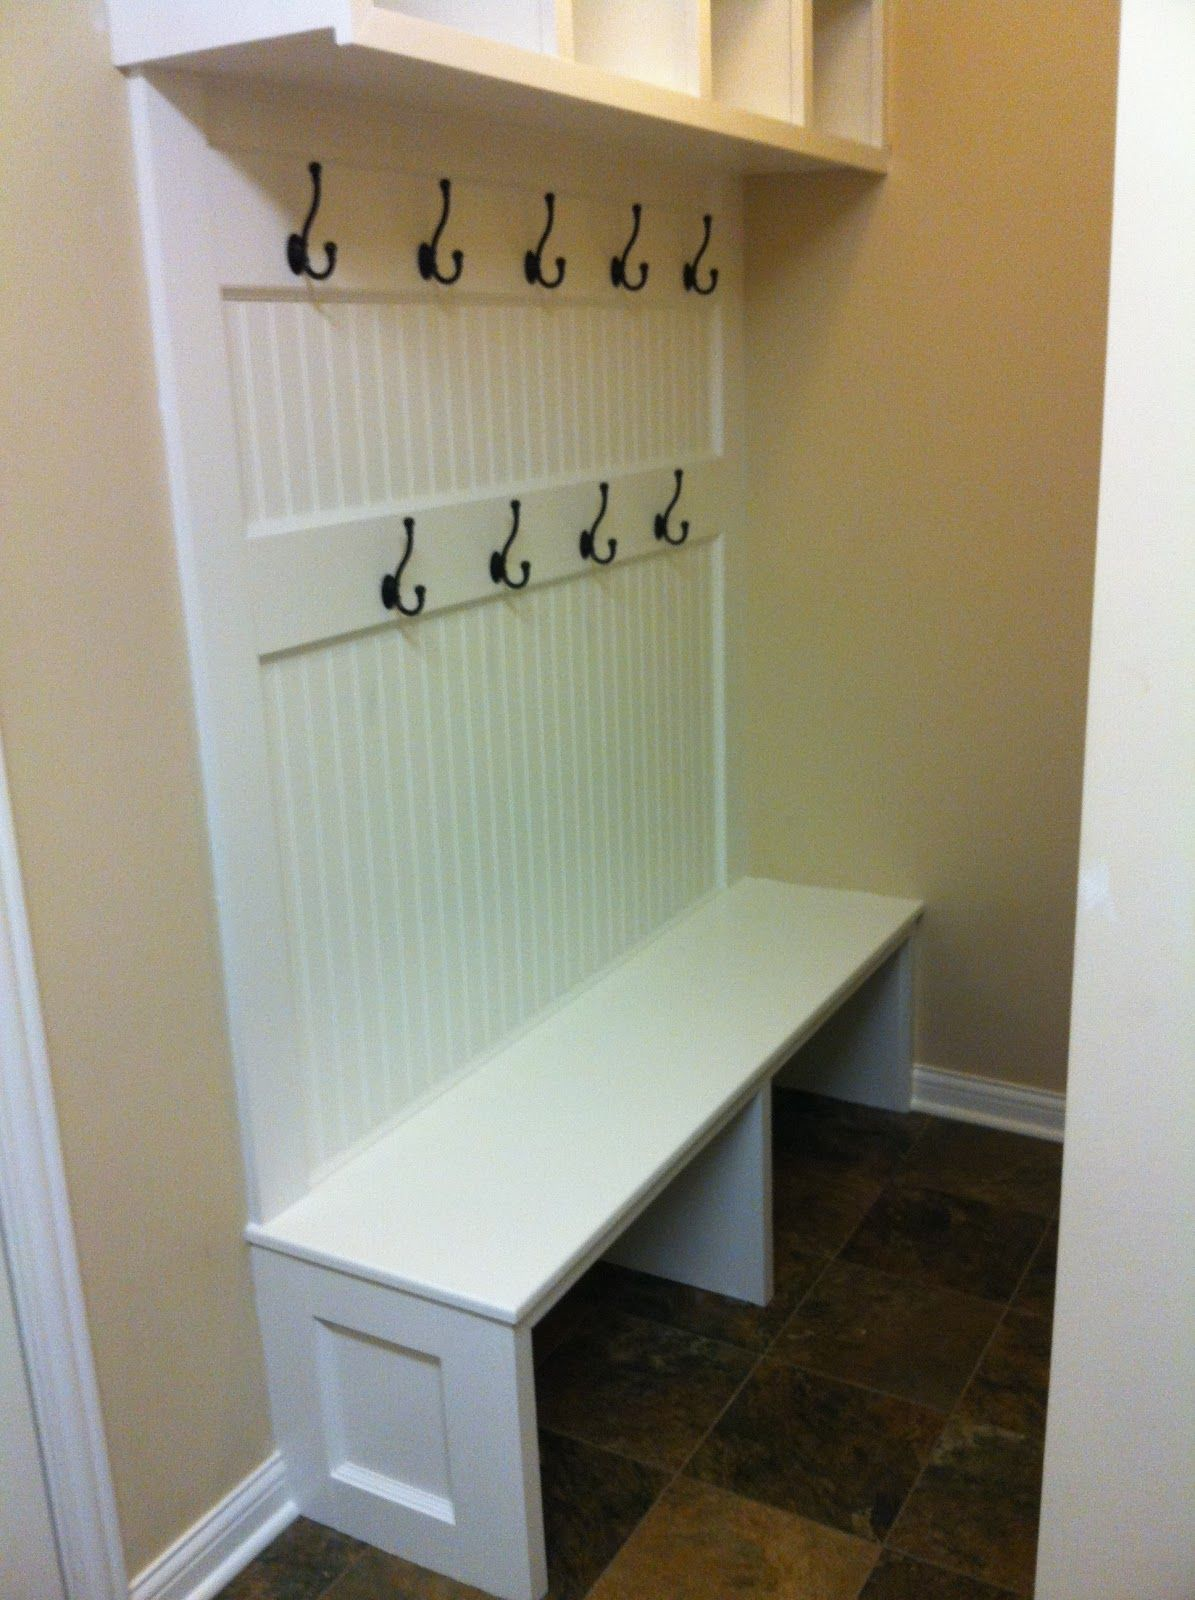 Mudroom Bench Mud Room Storage Mudroom Bench Plans Mudroom Design